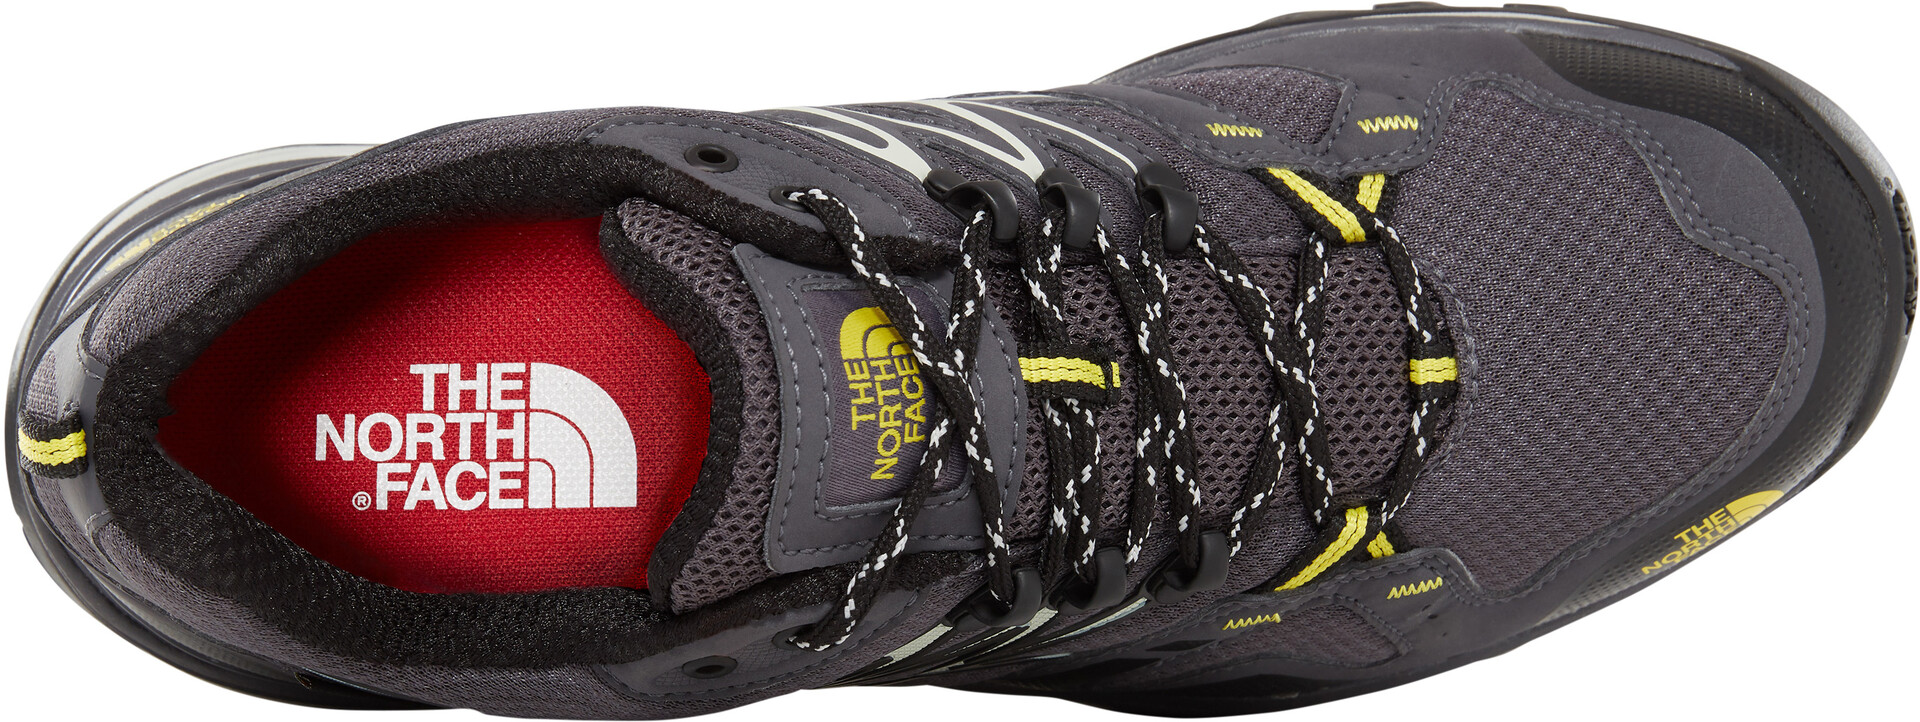 The North Face Hedgehog Fastpack GTX Shoes Men blackened pearlacid yellow